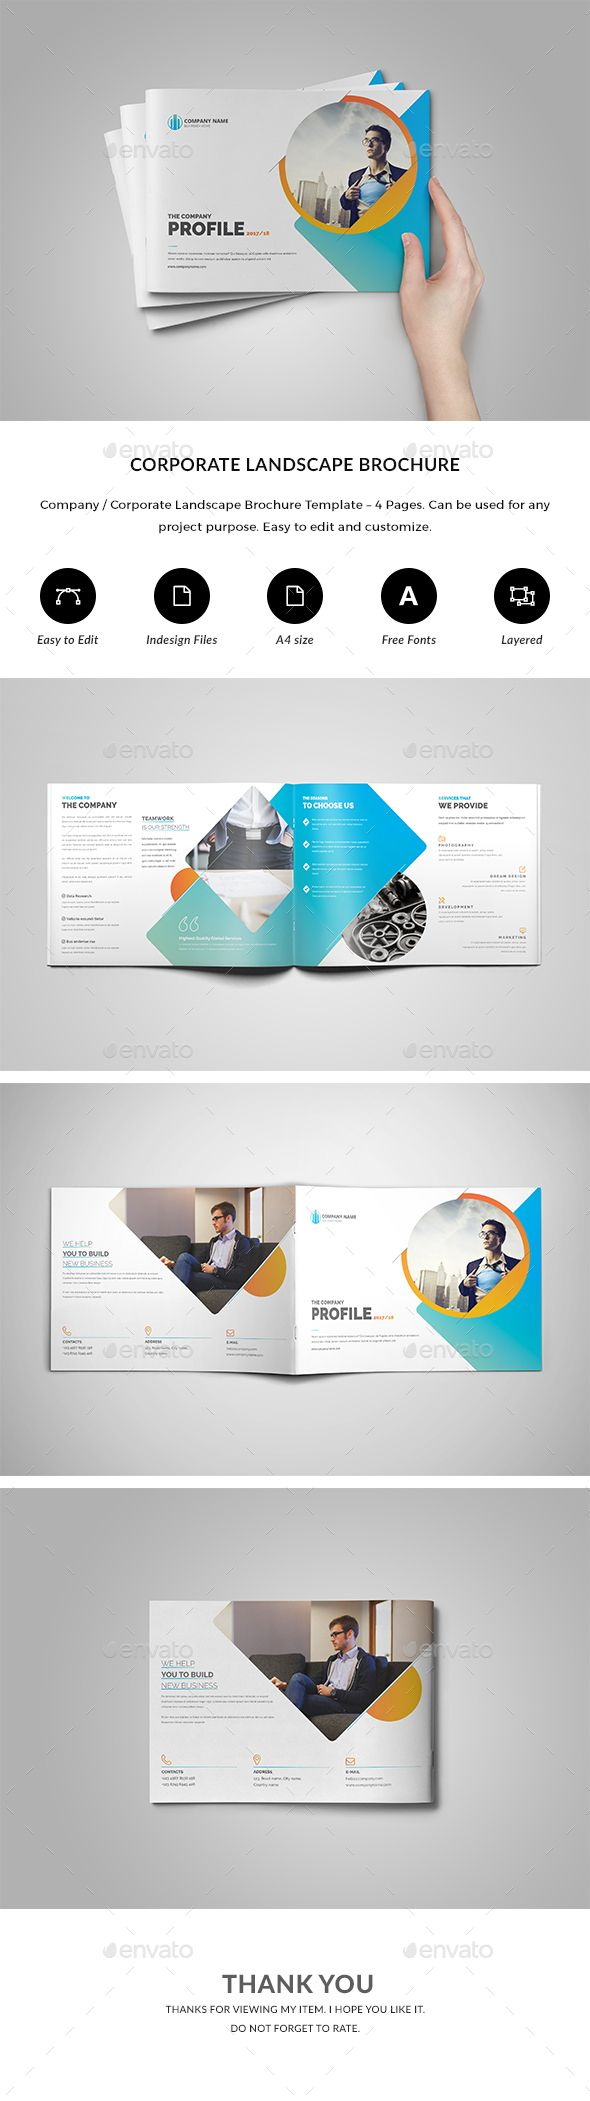 company corporate landscape brochure 4 pages brochures print